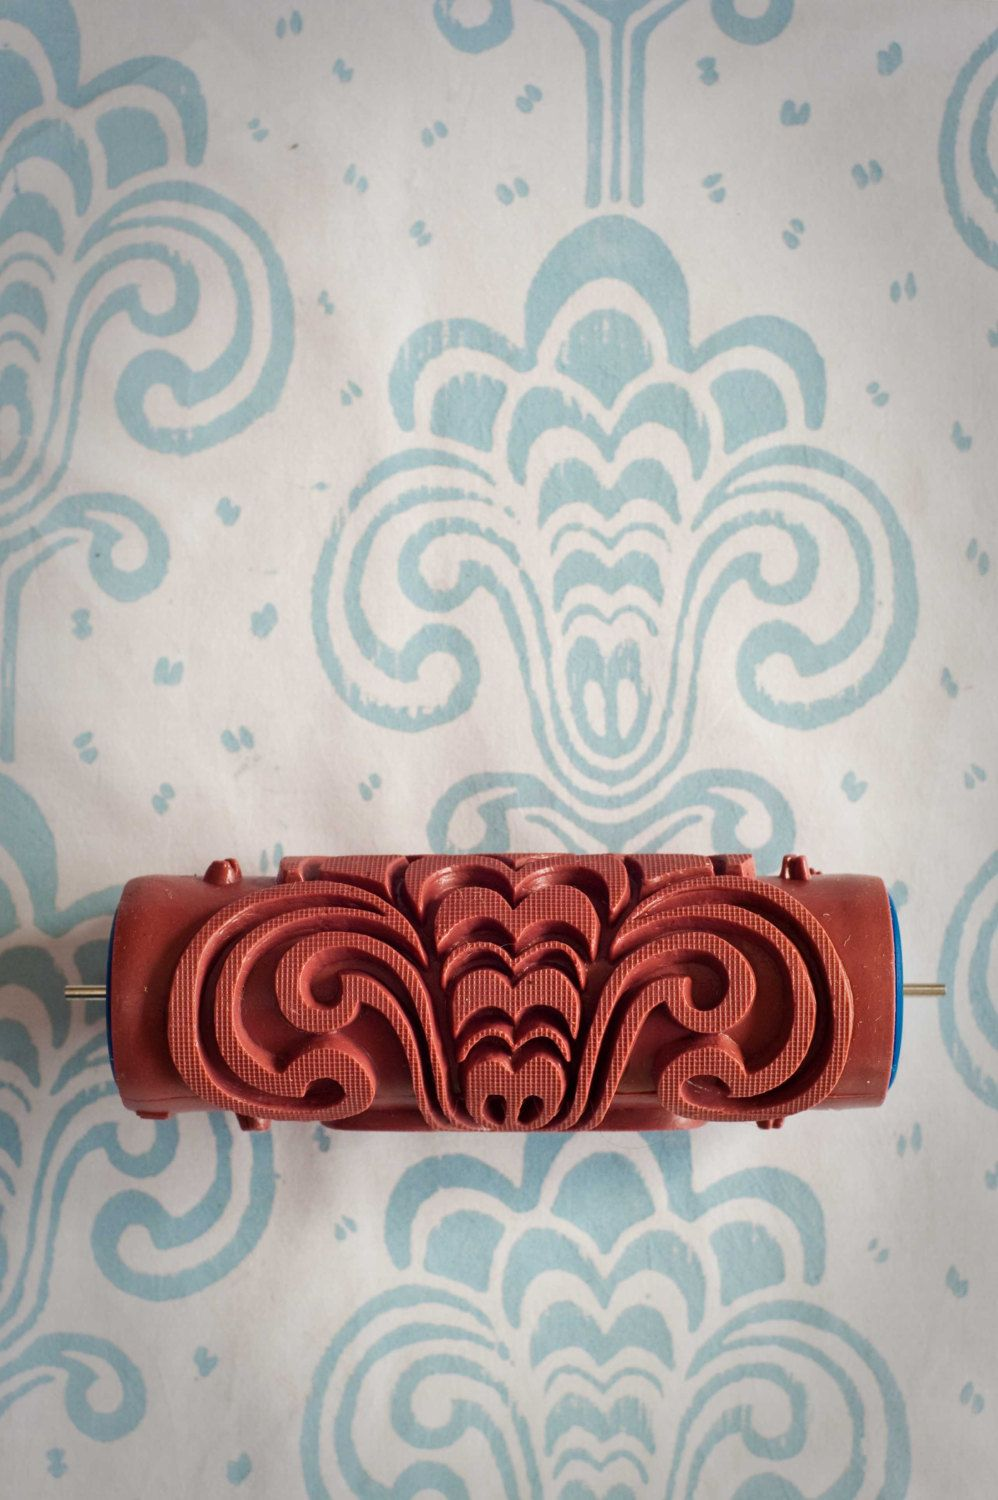 13 Patterned Paint Roller from The Painted House